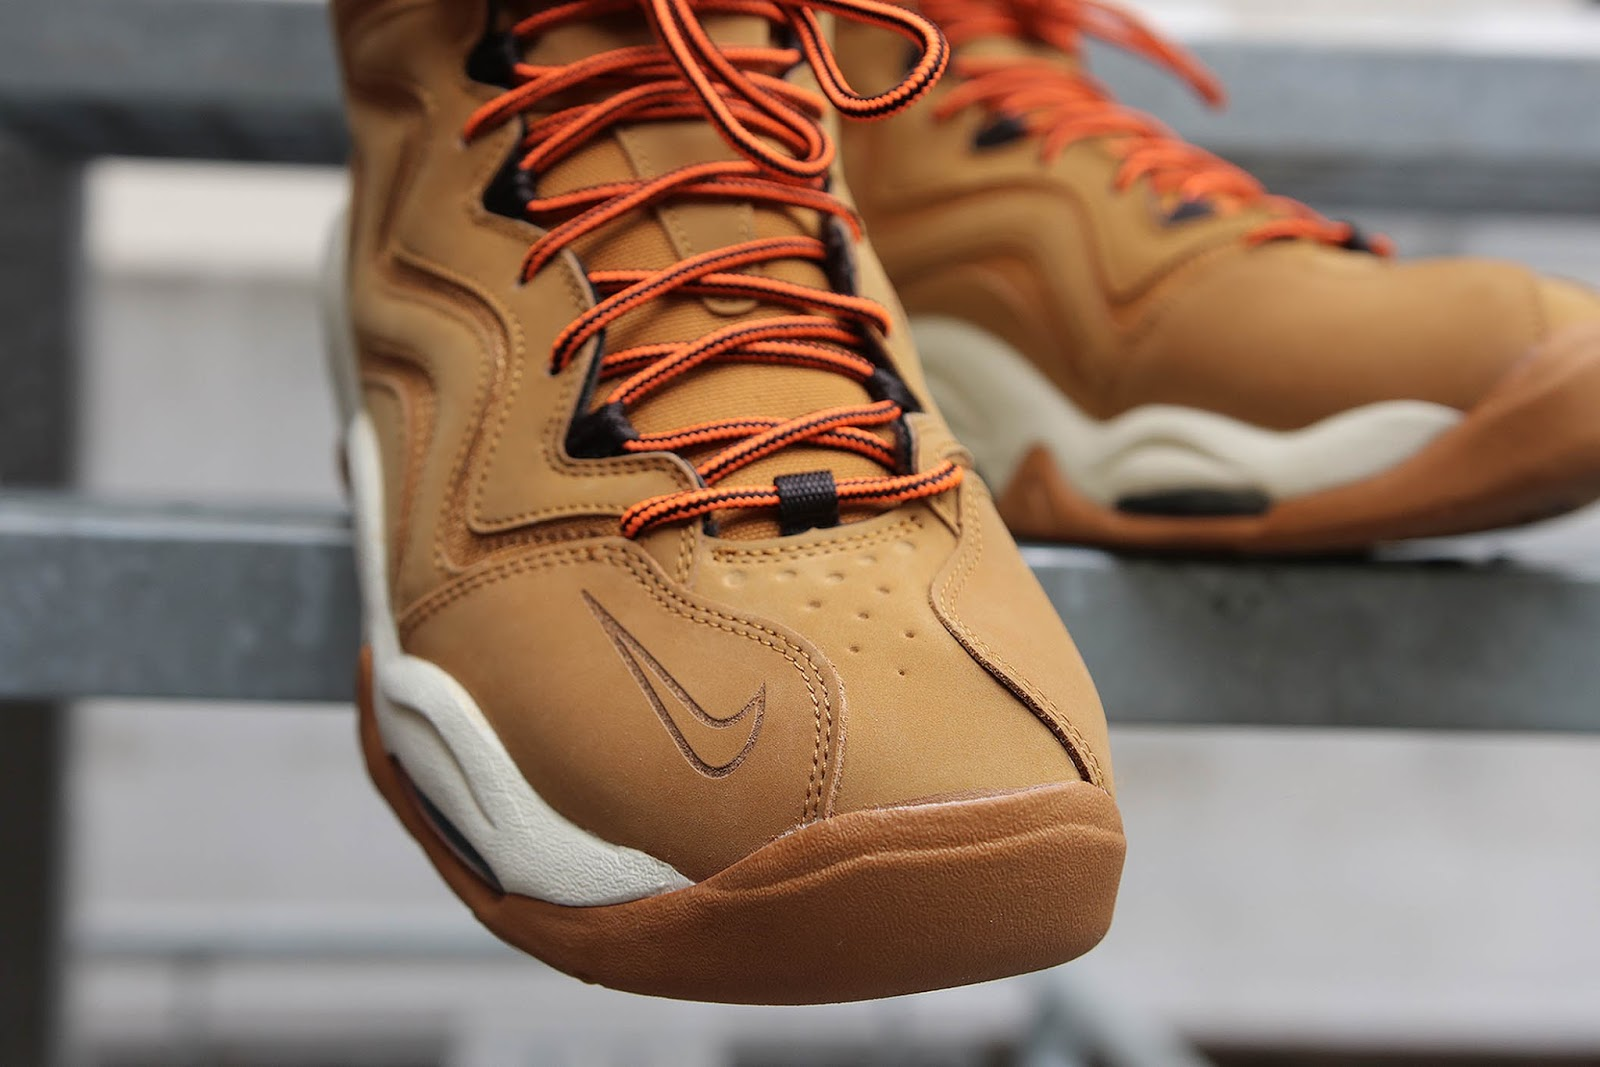 outlet store d29f8 547d8 The Nike Air Pippen 1 Wheat drops on Friday, 26 January 2018.